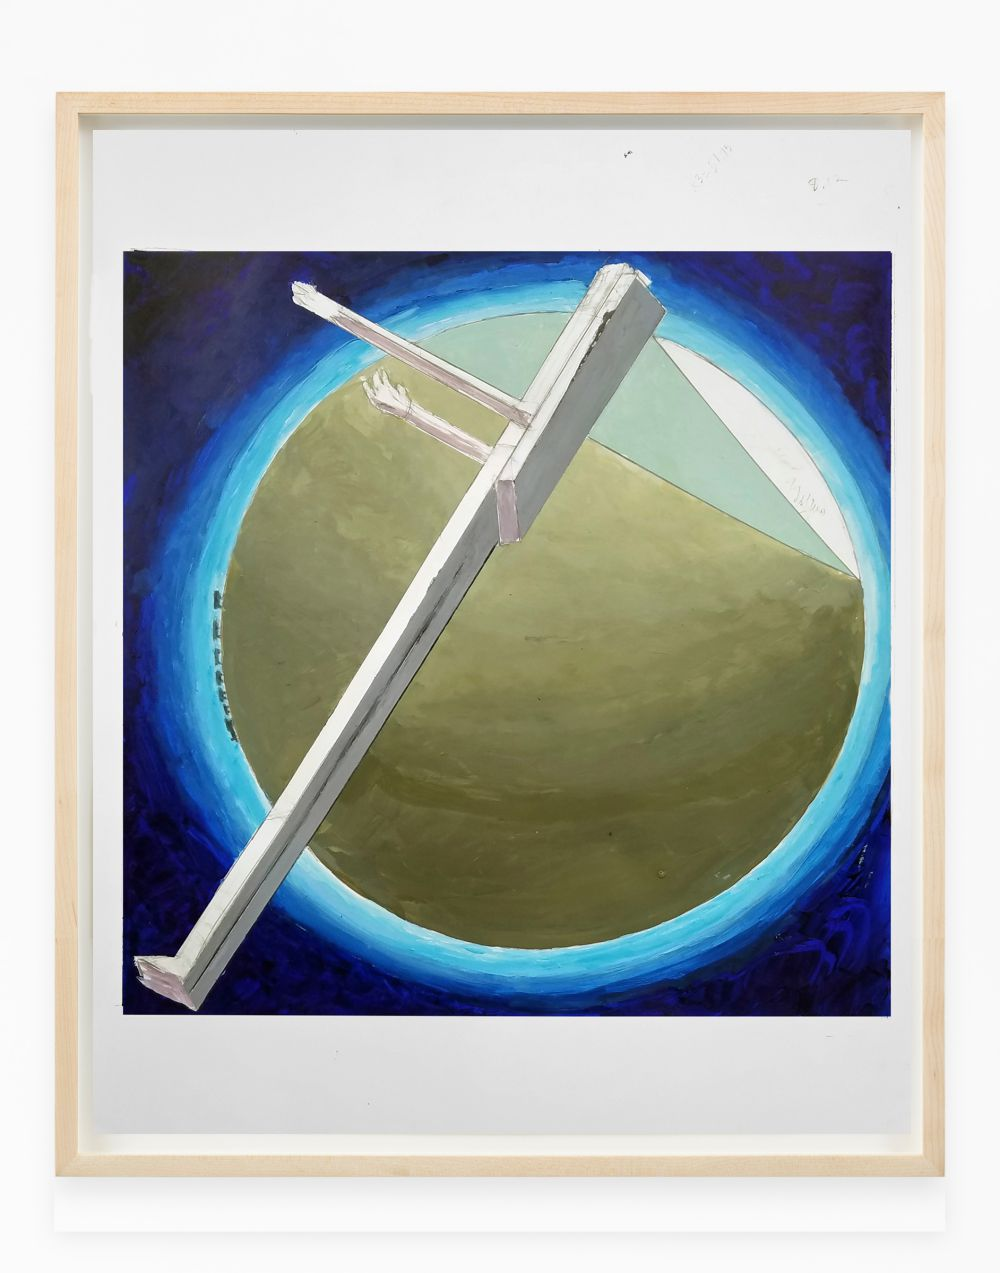 Study for Astronaut, Sunrise (after El Lissitzky)